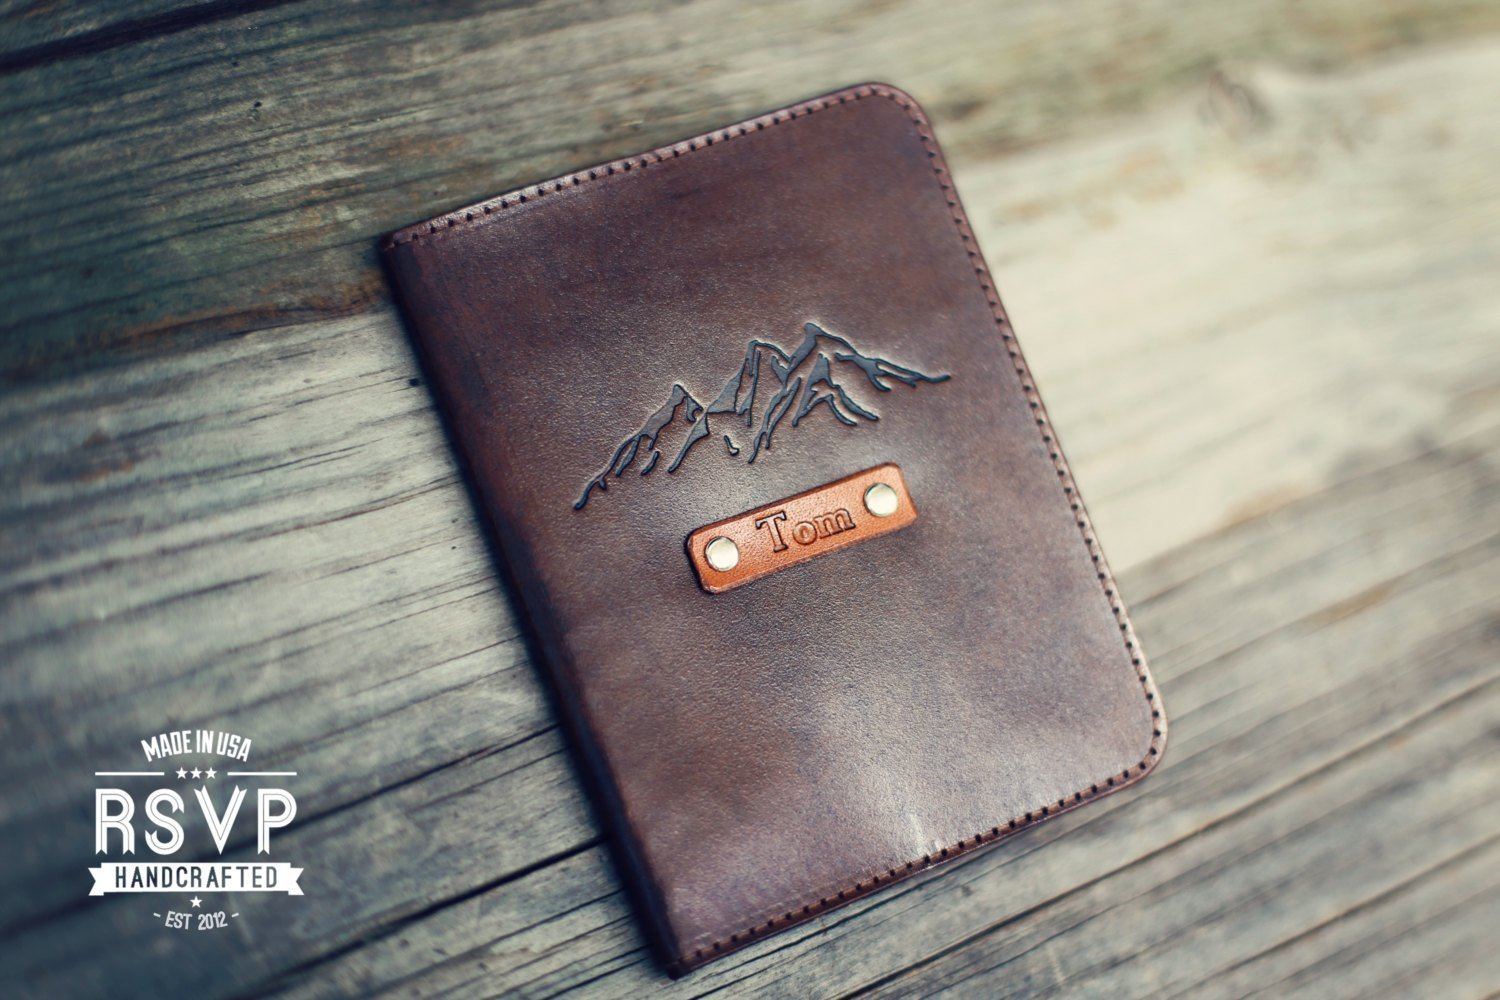 Personalized Leather Passport Cover, Real Leather, holder, wanderlust, travel, Mountains, handmade, Custom text, name initials